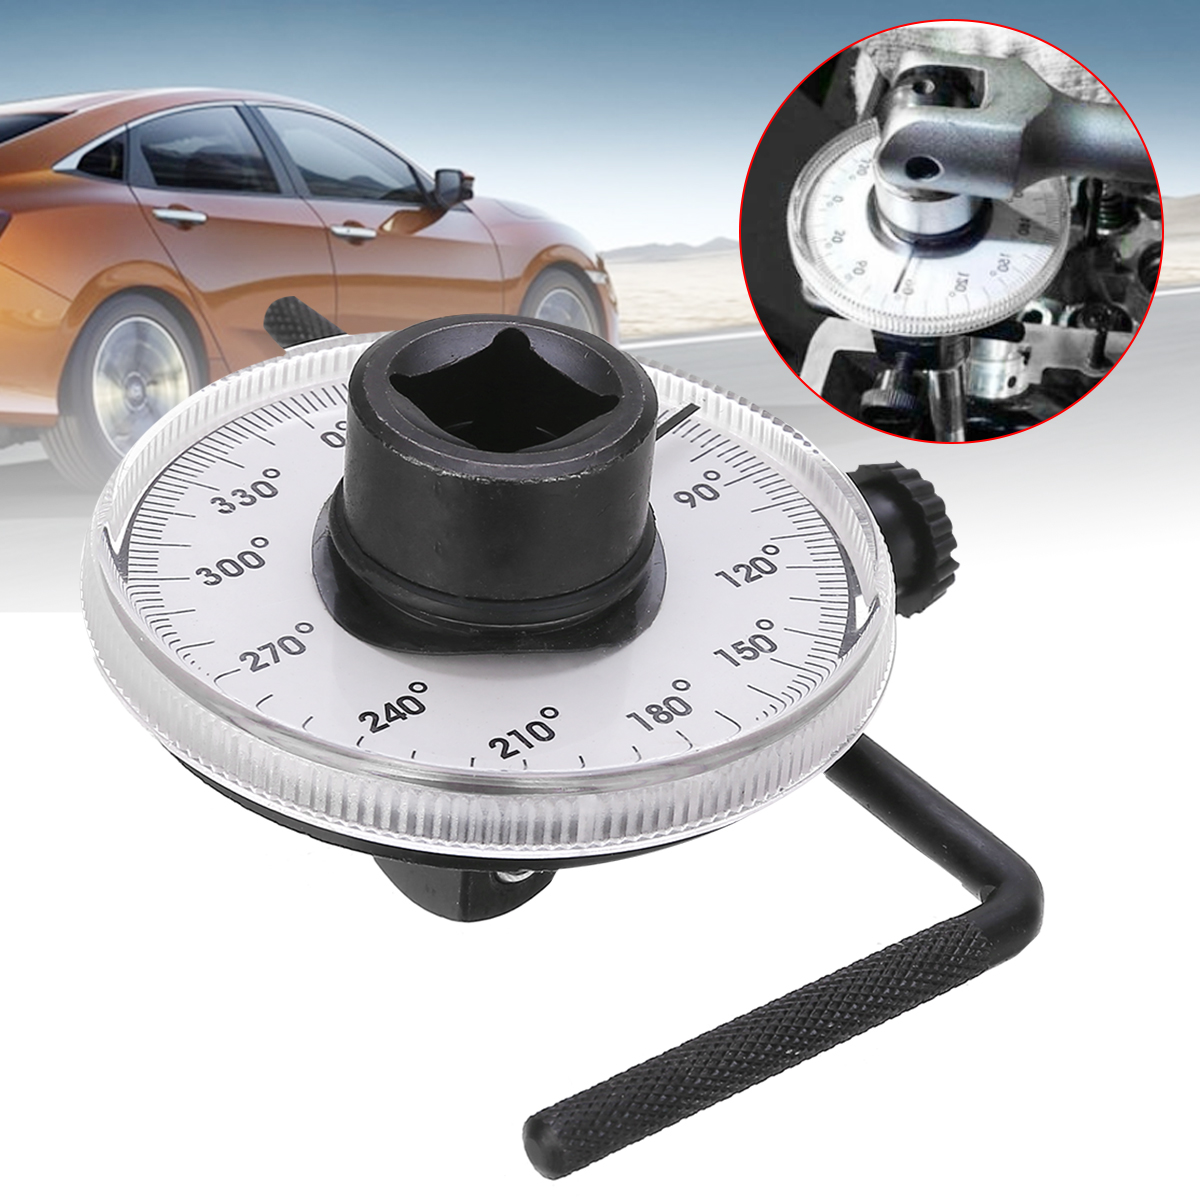 For Hand Tools Wrench Professional 1/2 Inch Adjustable Drive Torque Angle Gauge Auto Garage Tool Set